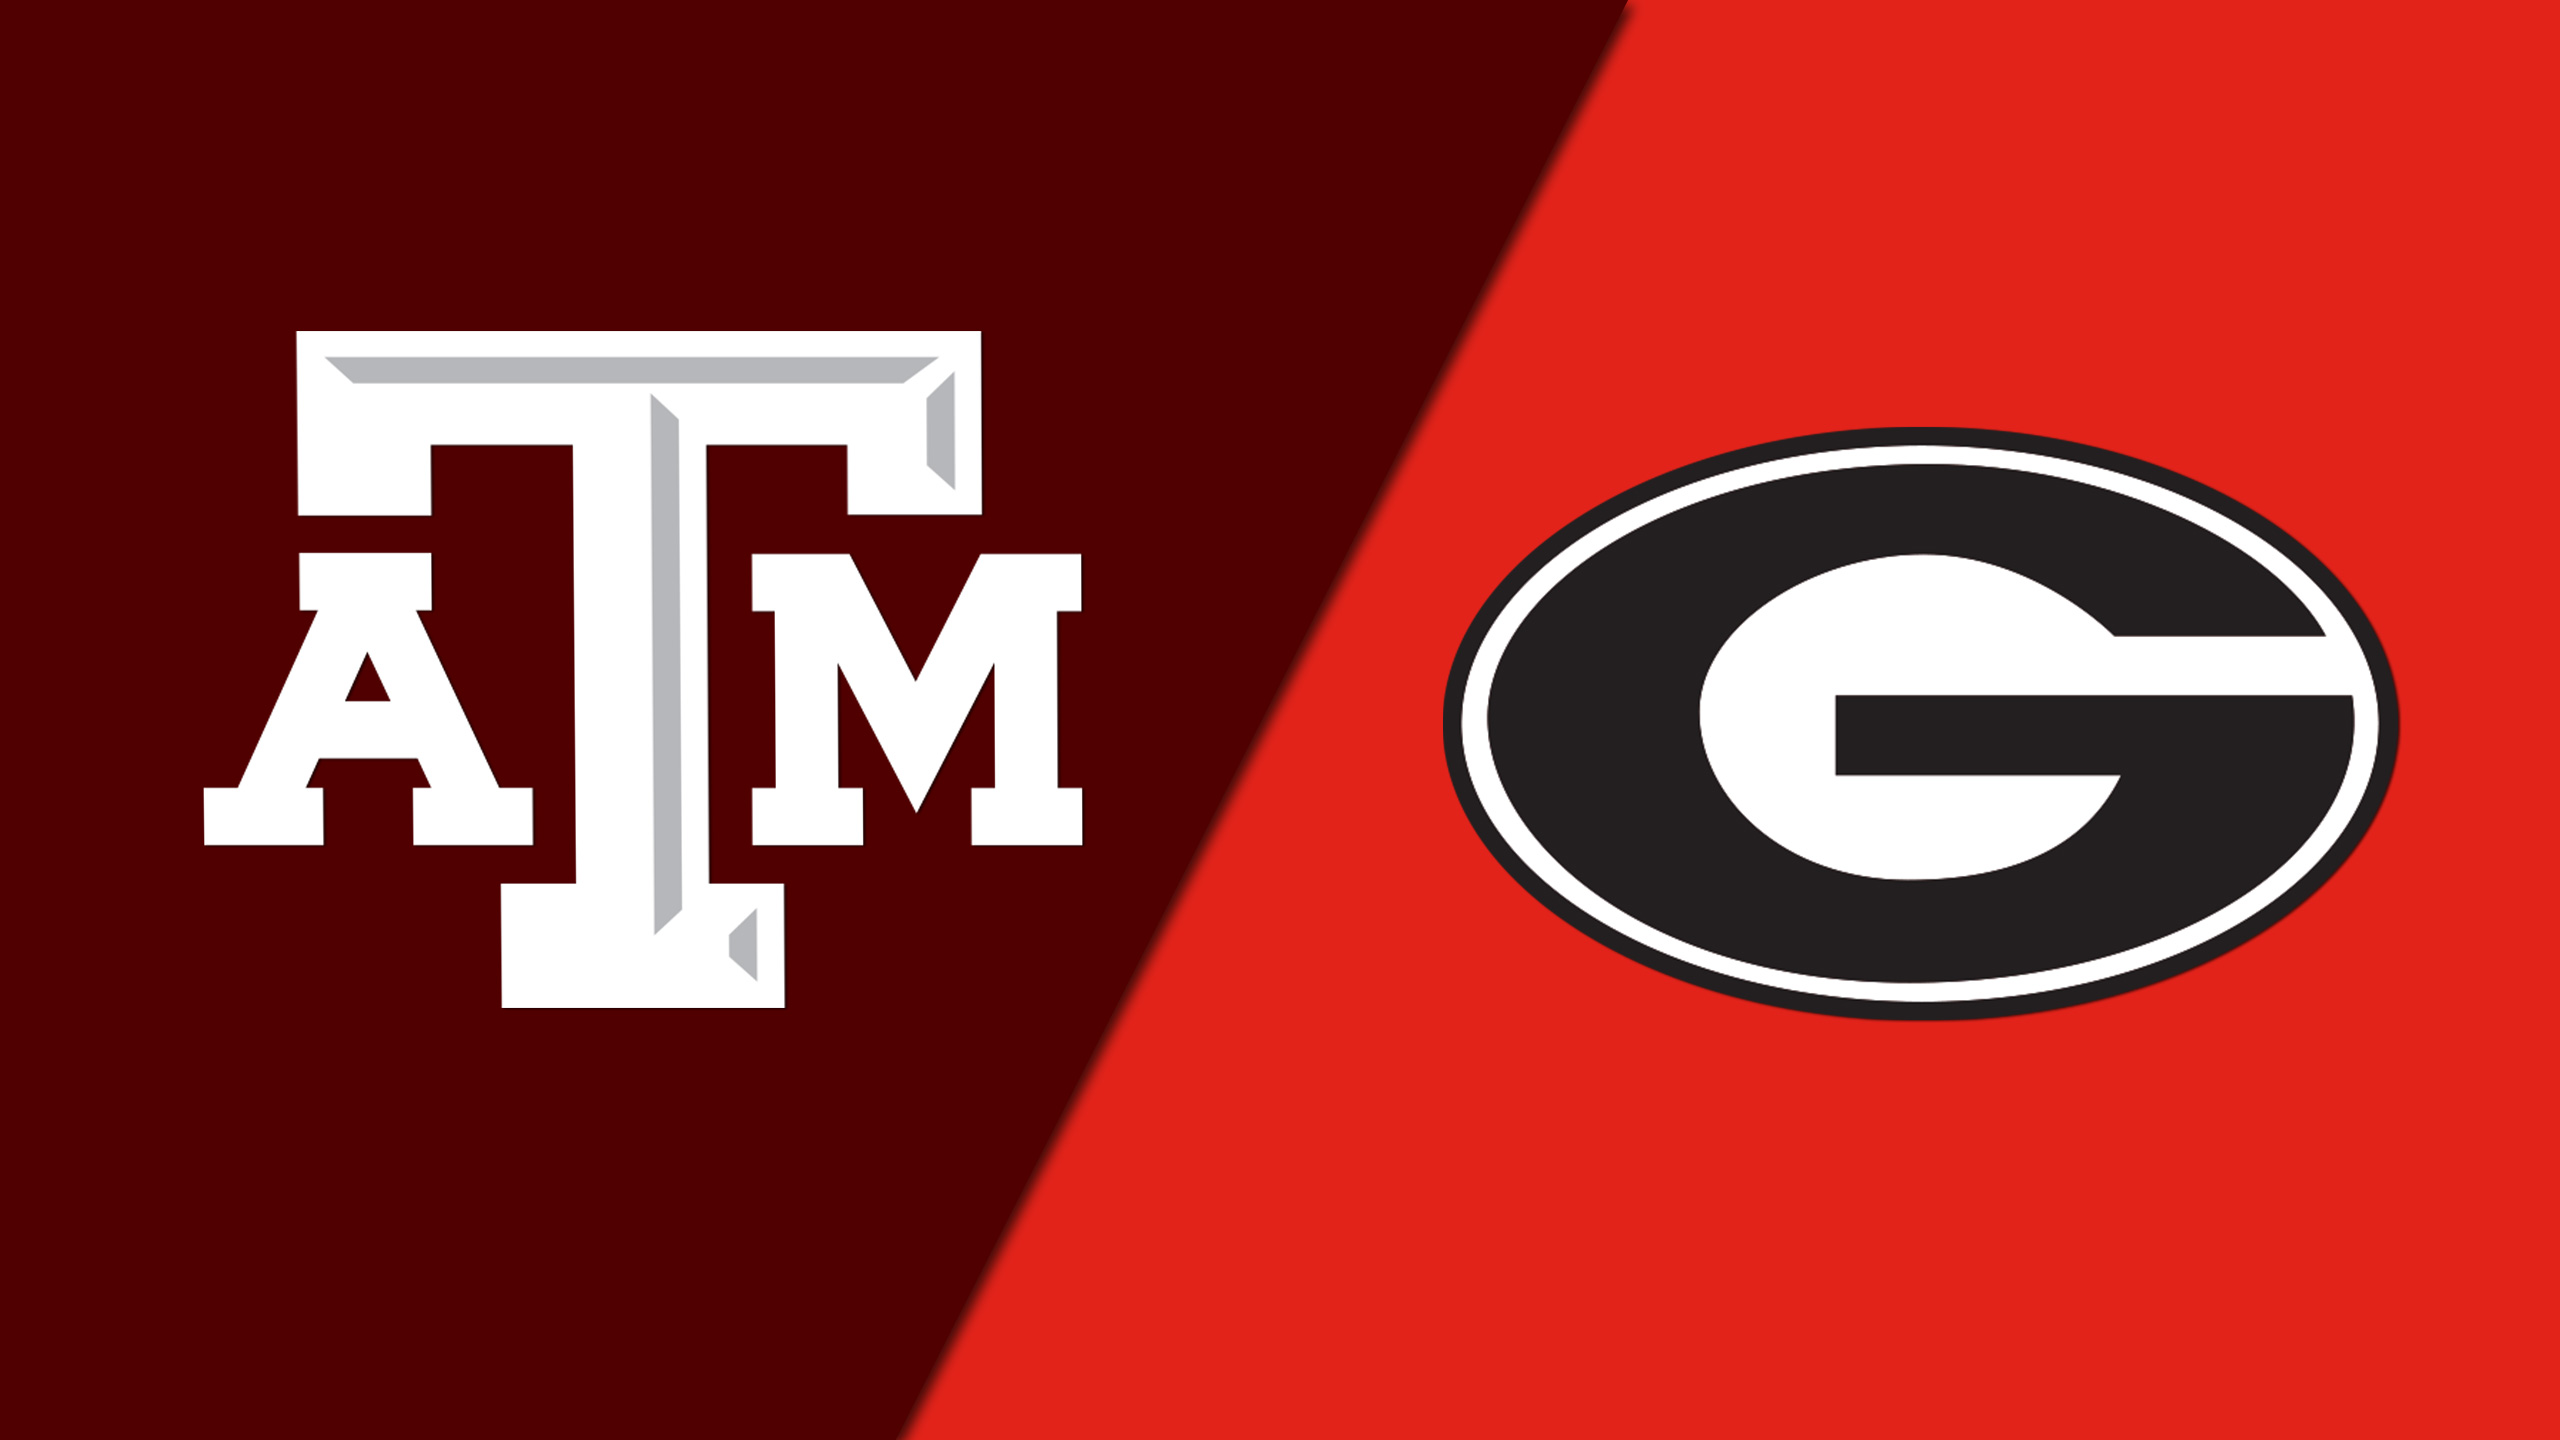 Texas A&M vs. Georgia (W Basketball)